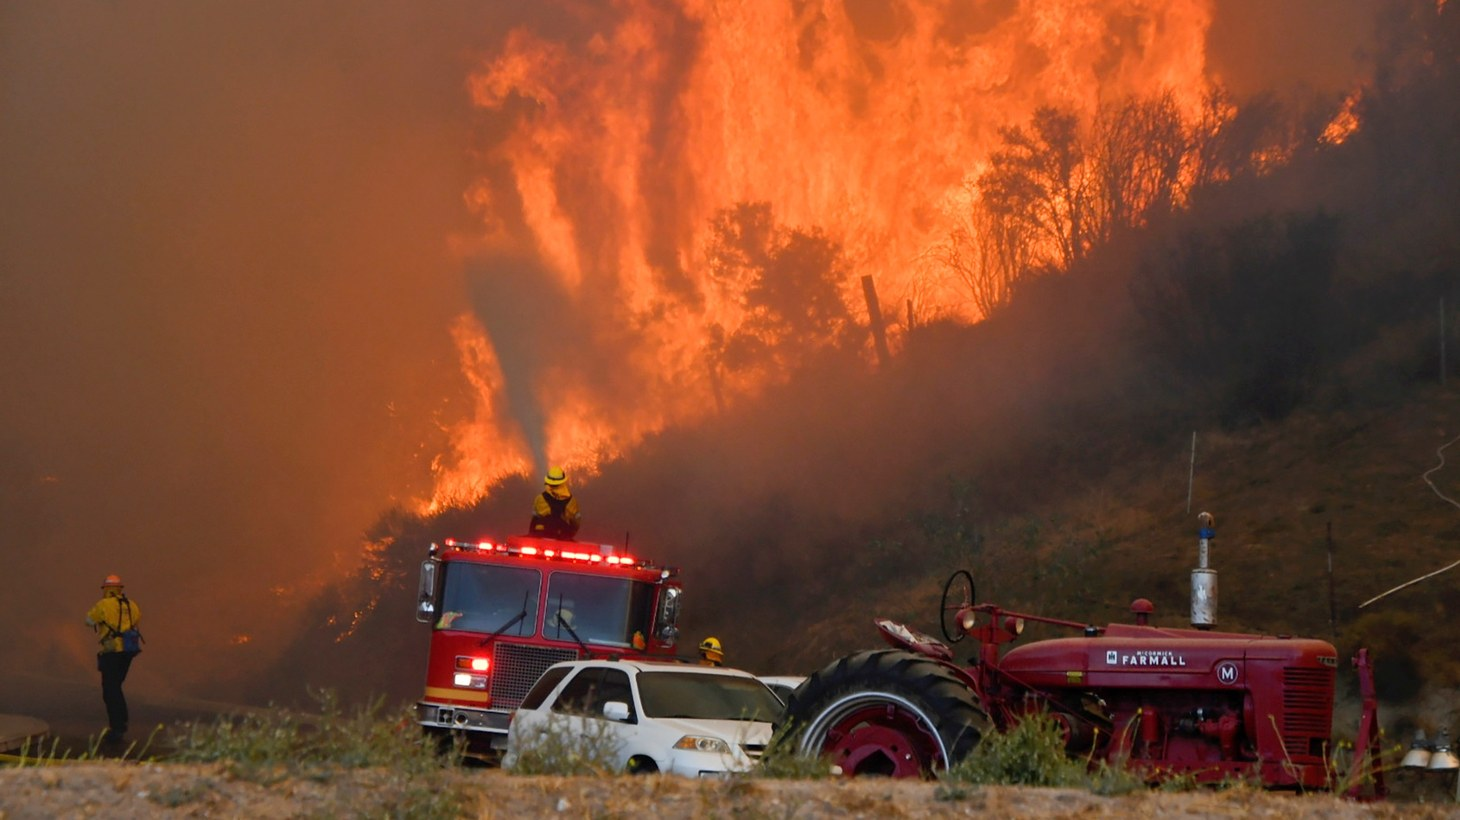 Firefighters arrive to battle the Tick fire, a wind driven wild fire in the hills of Canyon Country north of Los Angeles, California, U.S. October 24, 2019.